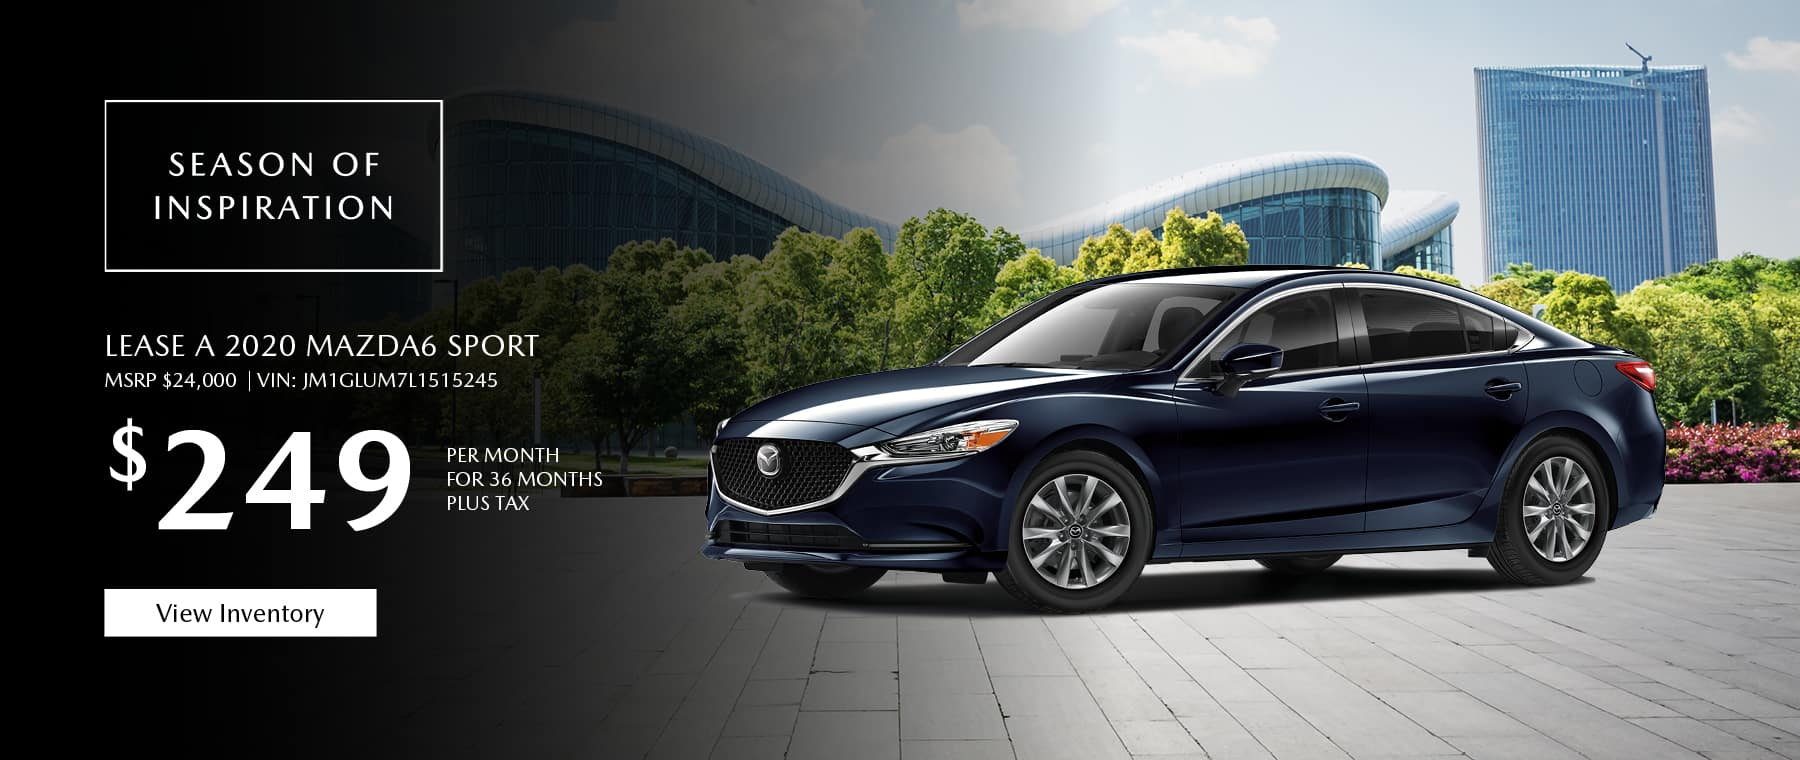 Lease the 2020 Mazda6 for $249 per month, plus tax.